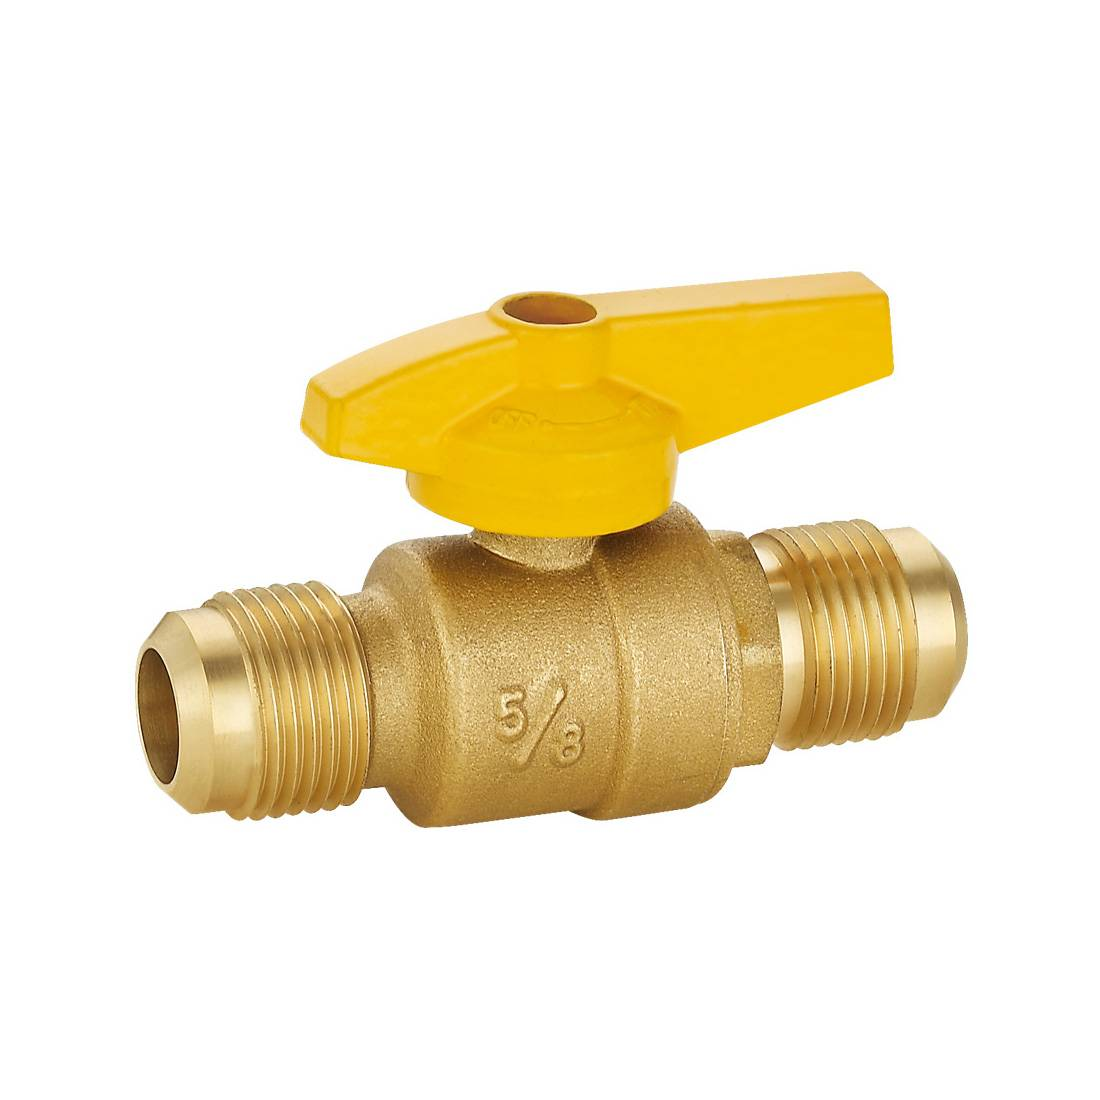 Brass Gas Ball Valve Flare x Flare Straight Featured Image